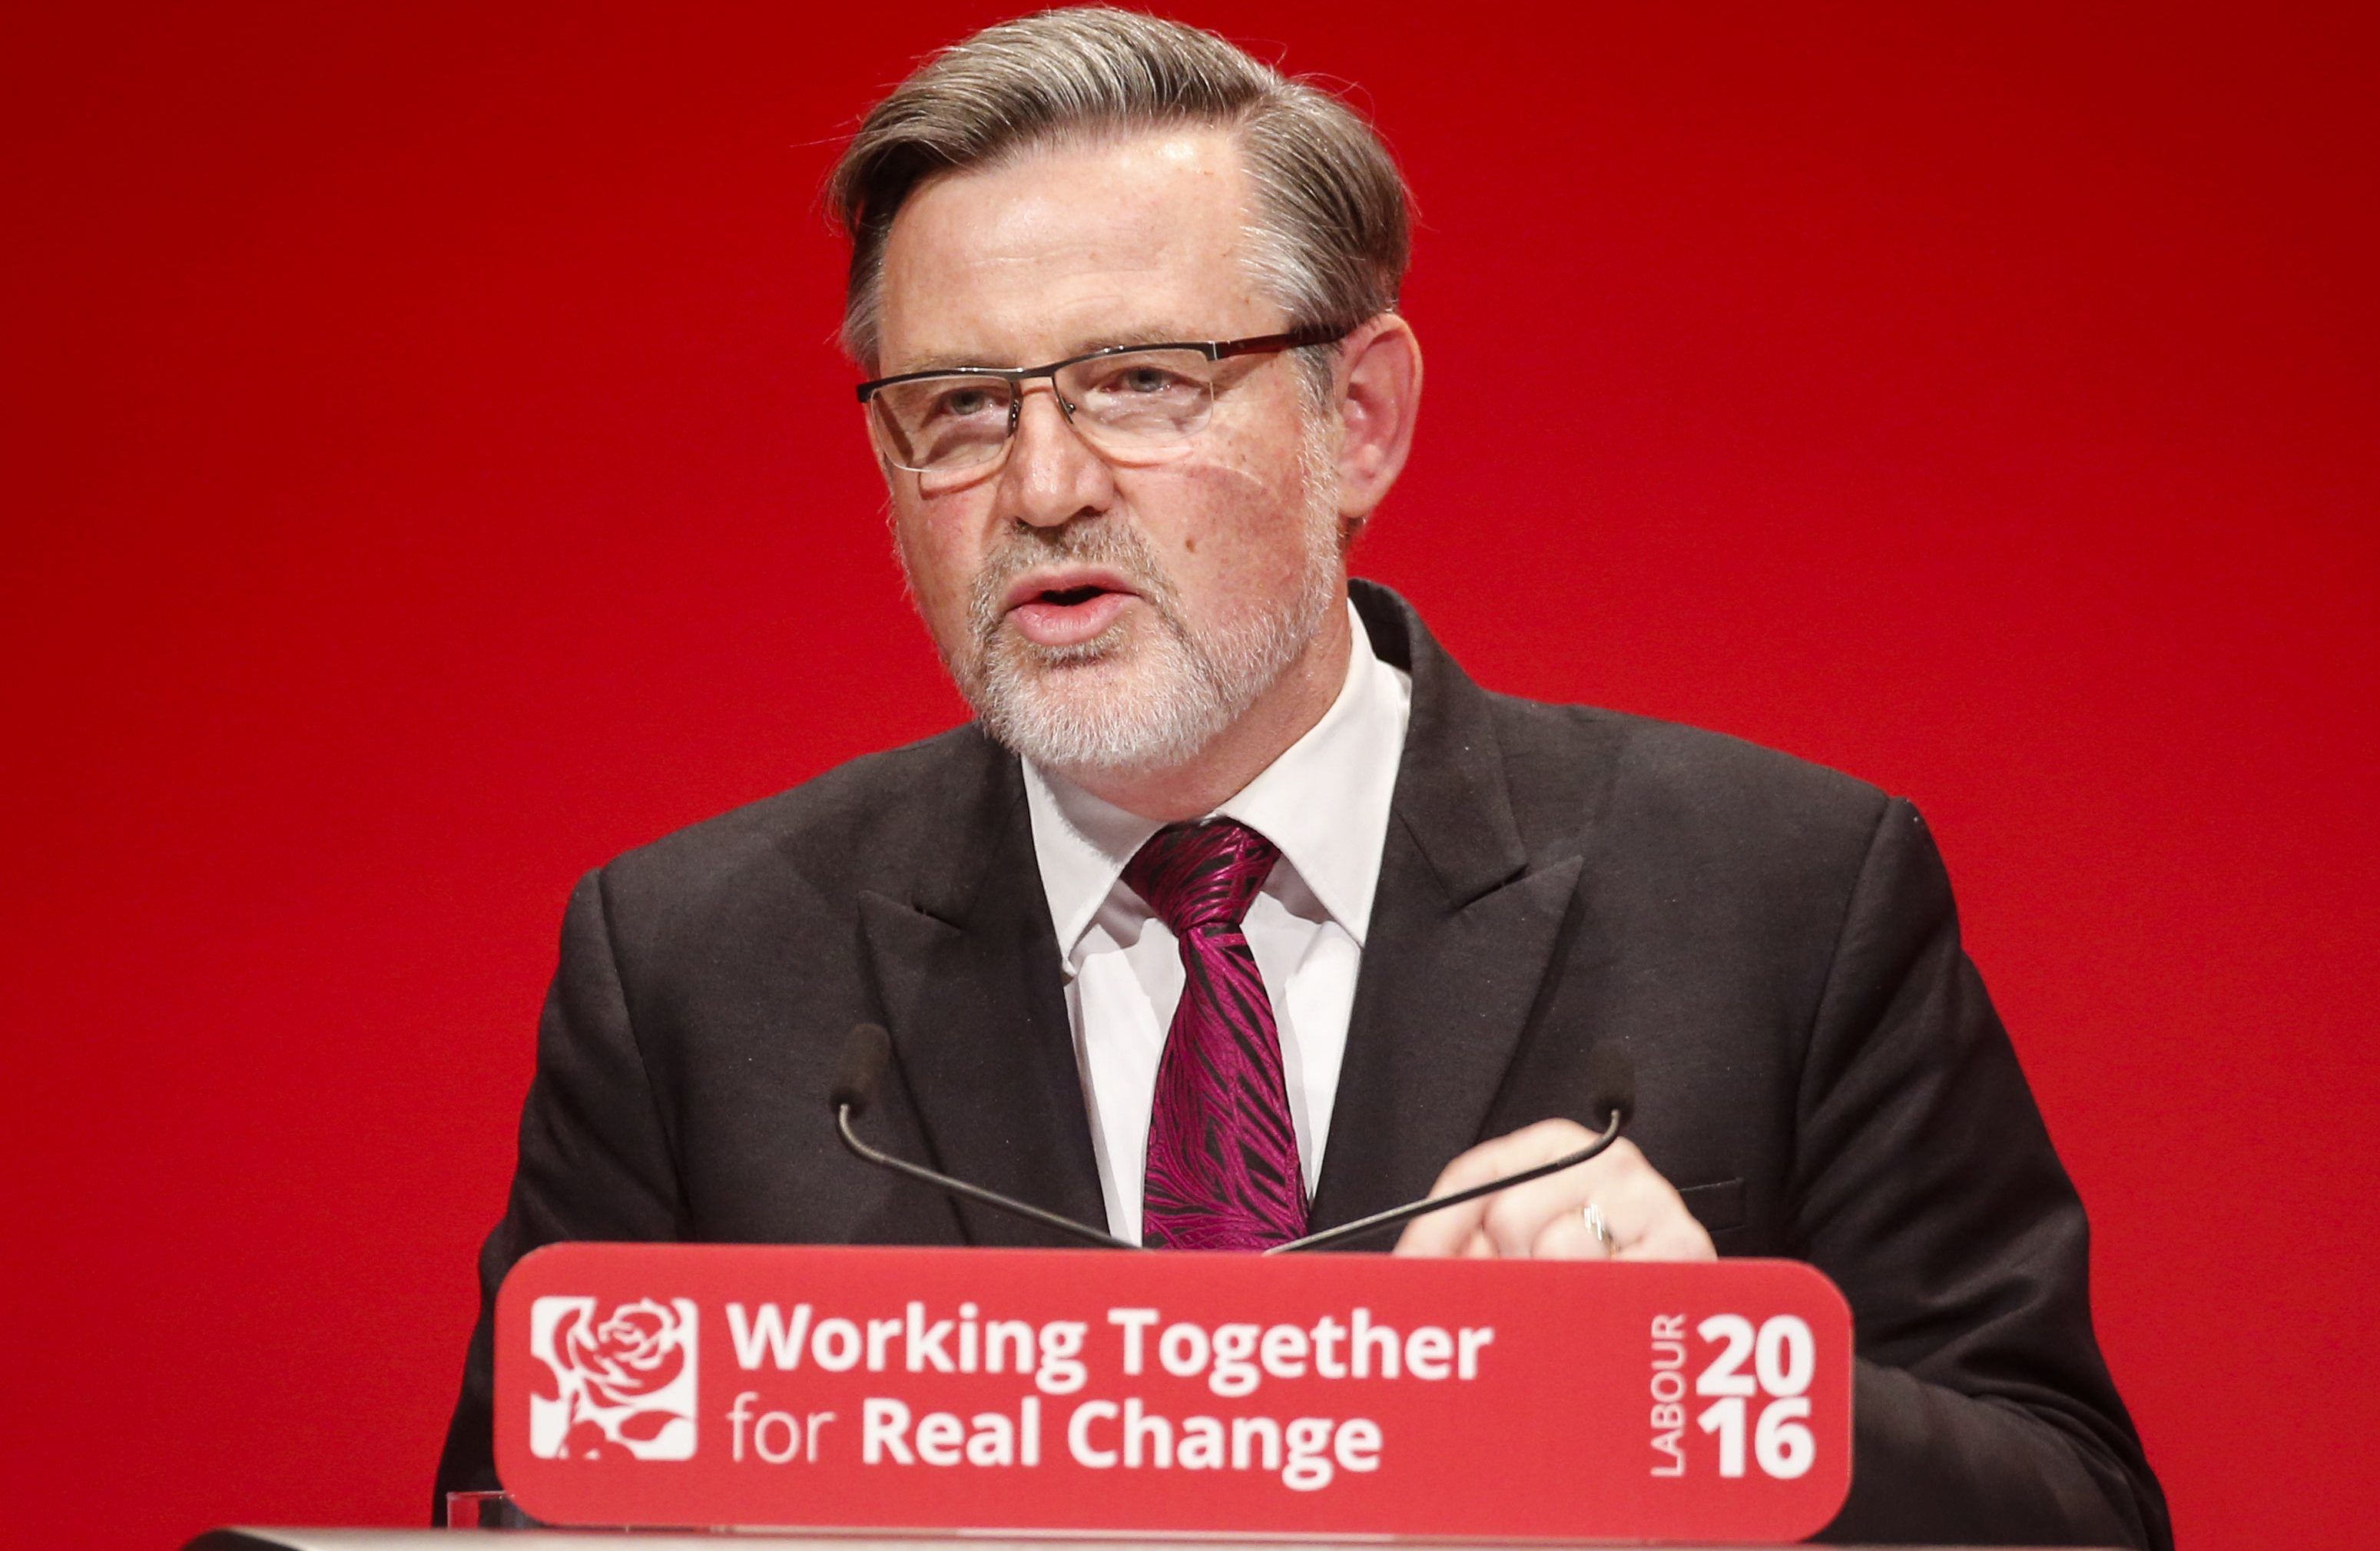 Barry Gardiner, Shadow Secretary of State for International Trade